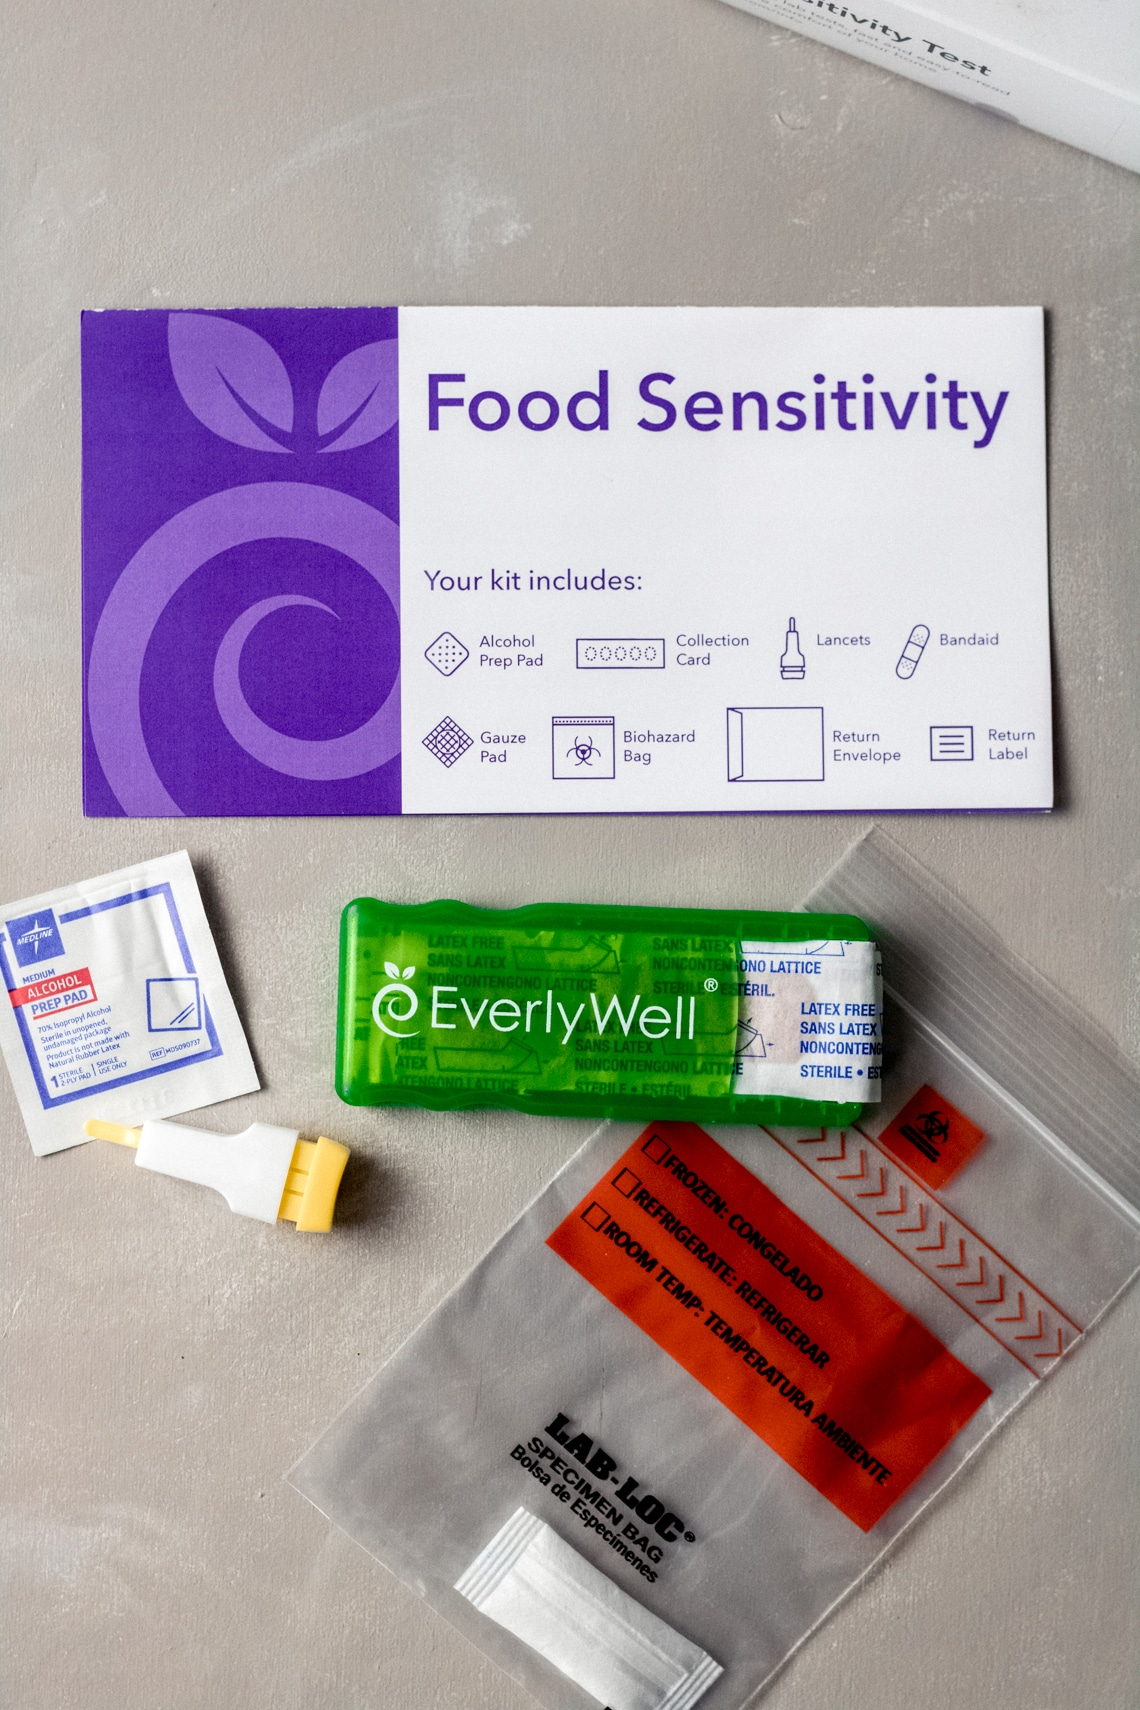 the components of an EverlyWell Food Sensitivity Test